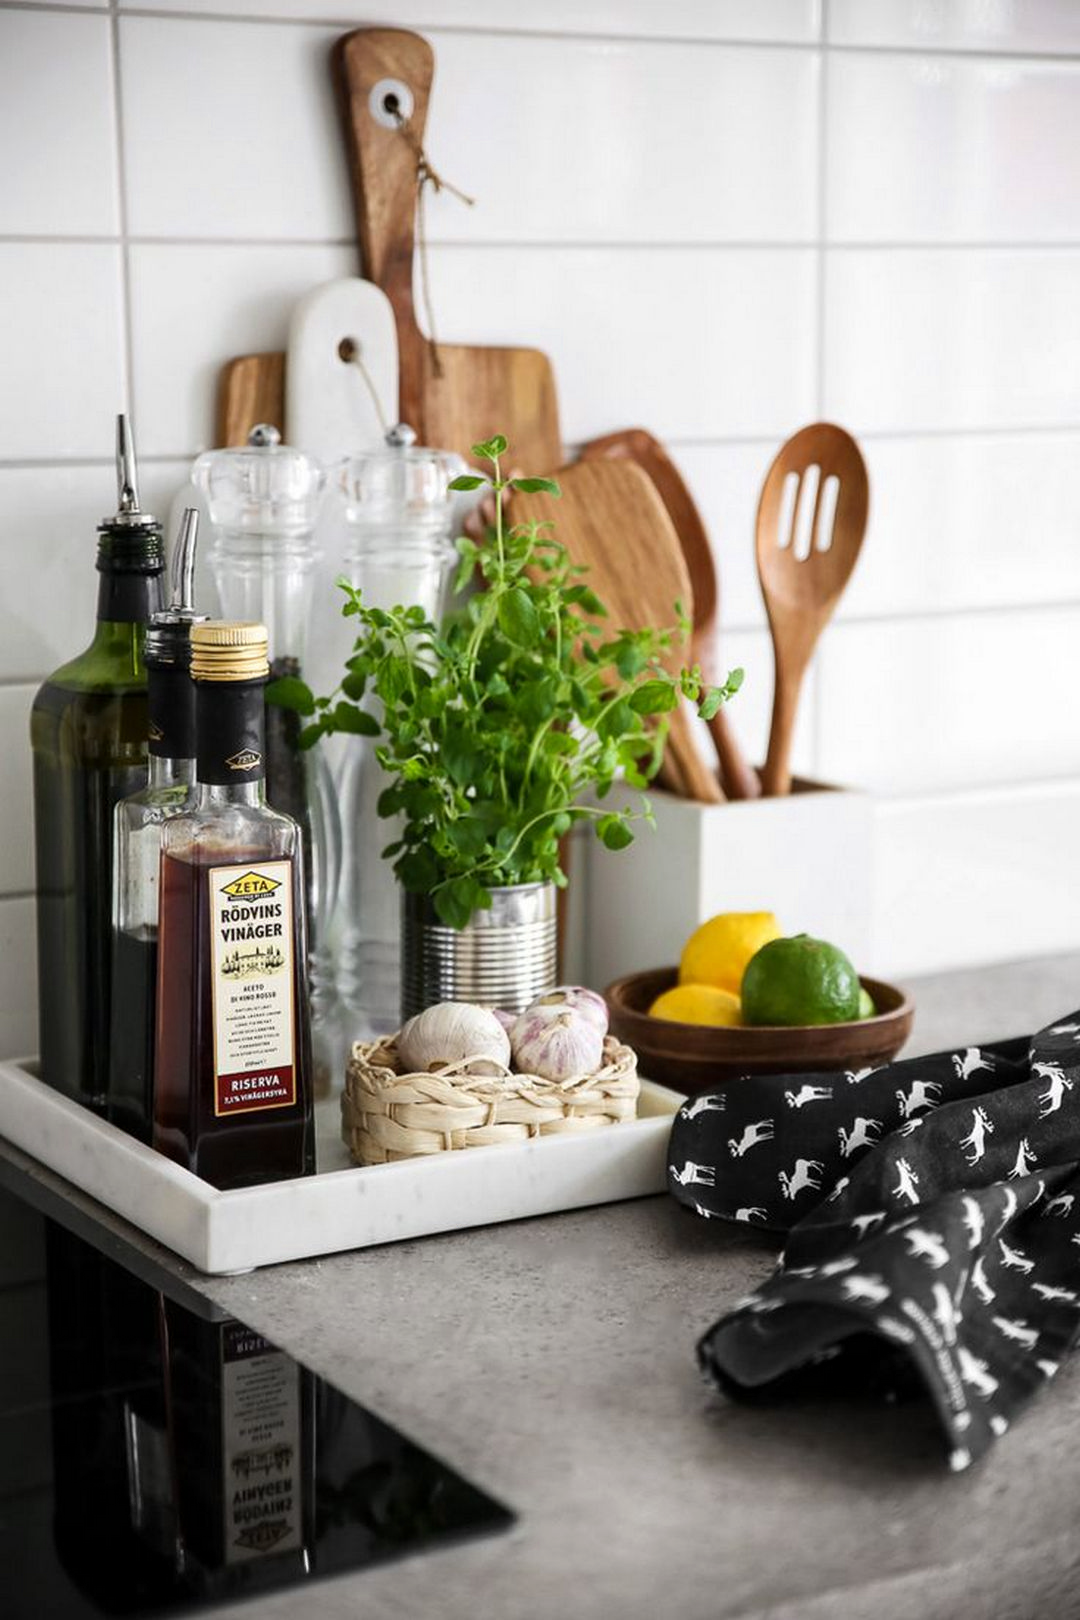 11 Incredibly Useful Kitchen Organization Tips for Small House ... on frugal kitchen storage ideas, small kitchen storage ideas, rustic kitchen storage ideas, kitchen countertop storage ideas,